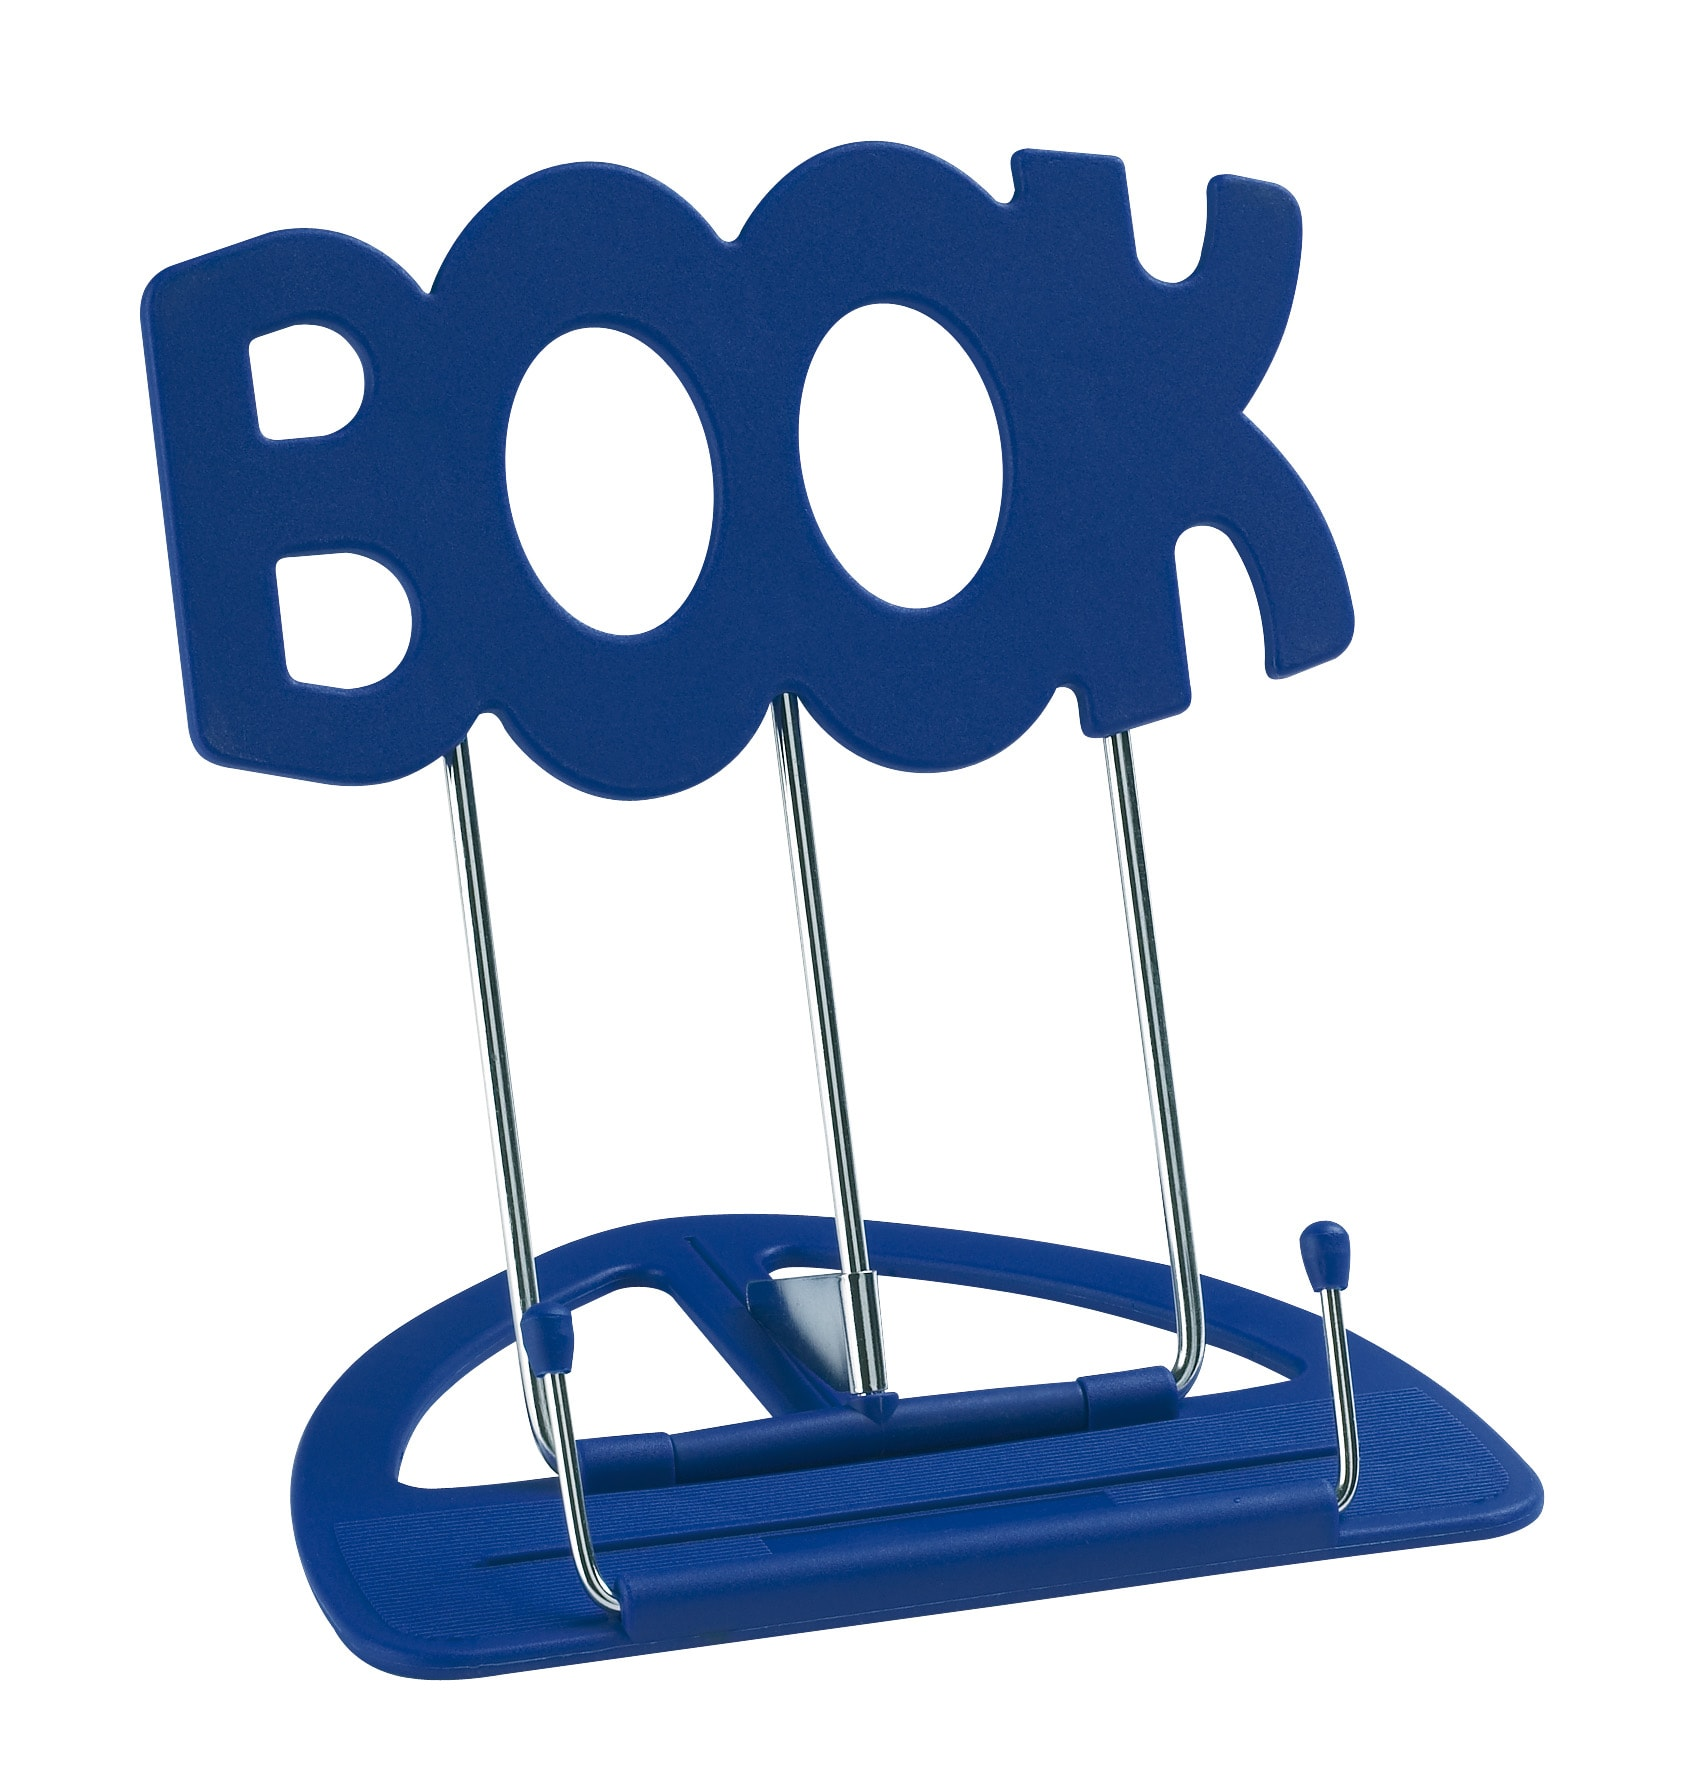 KM12440 - Uni-boy »book« stand